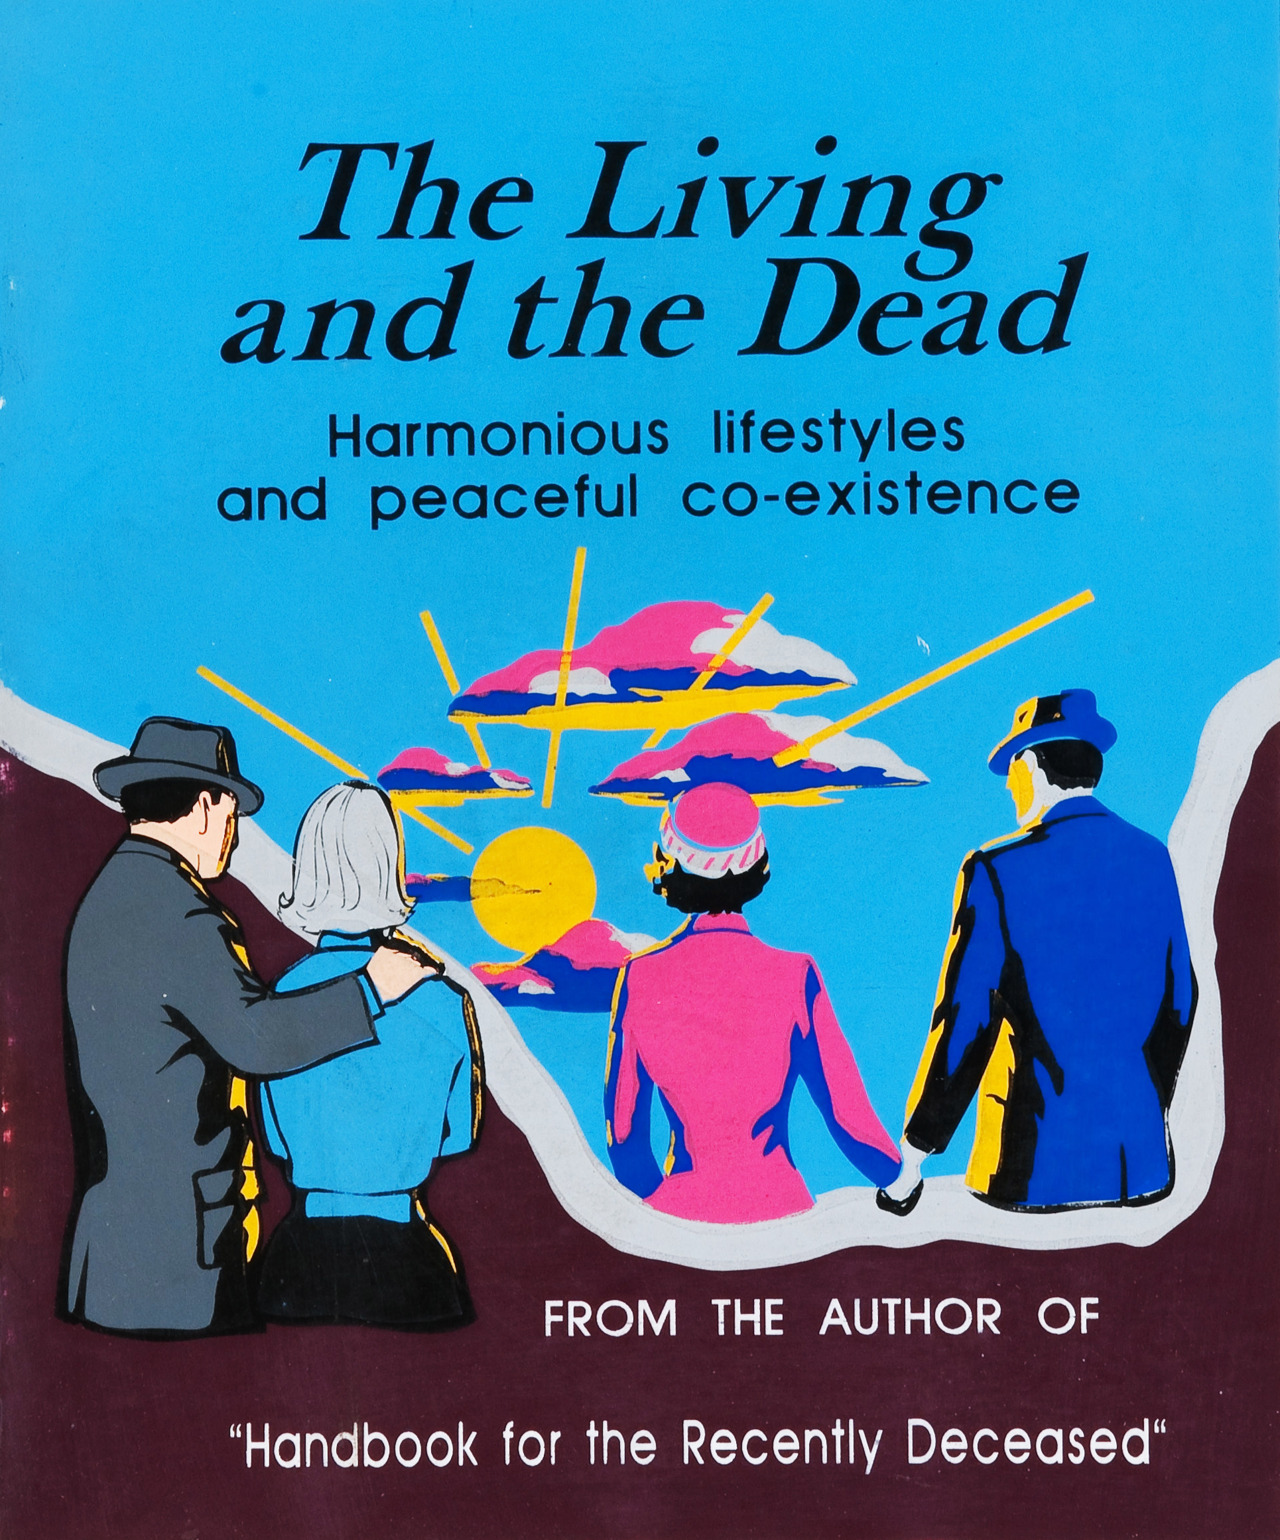 Printable Book Cover Handbook For The Recently Deceased ~ The living and dead beetlejuice wiki fandom